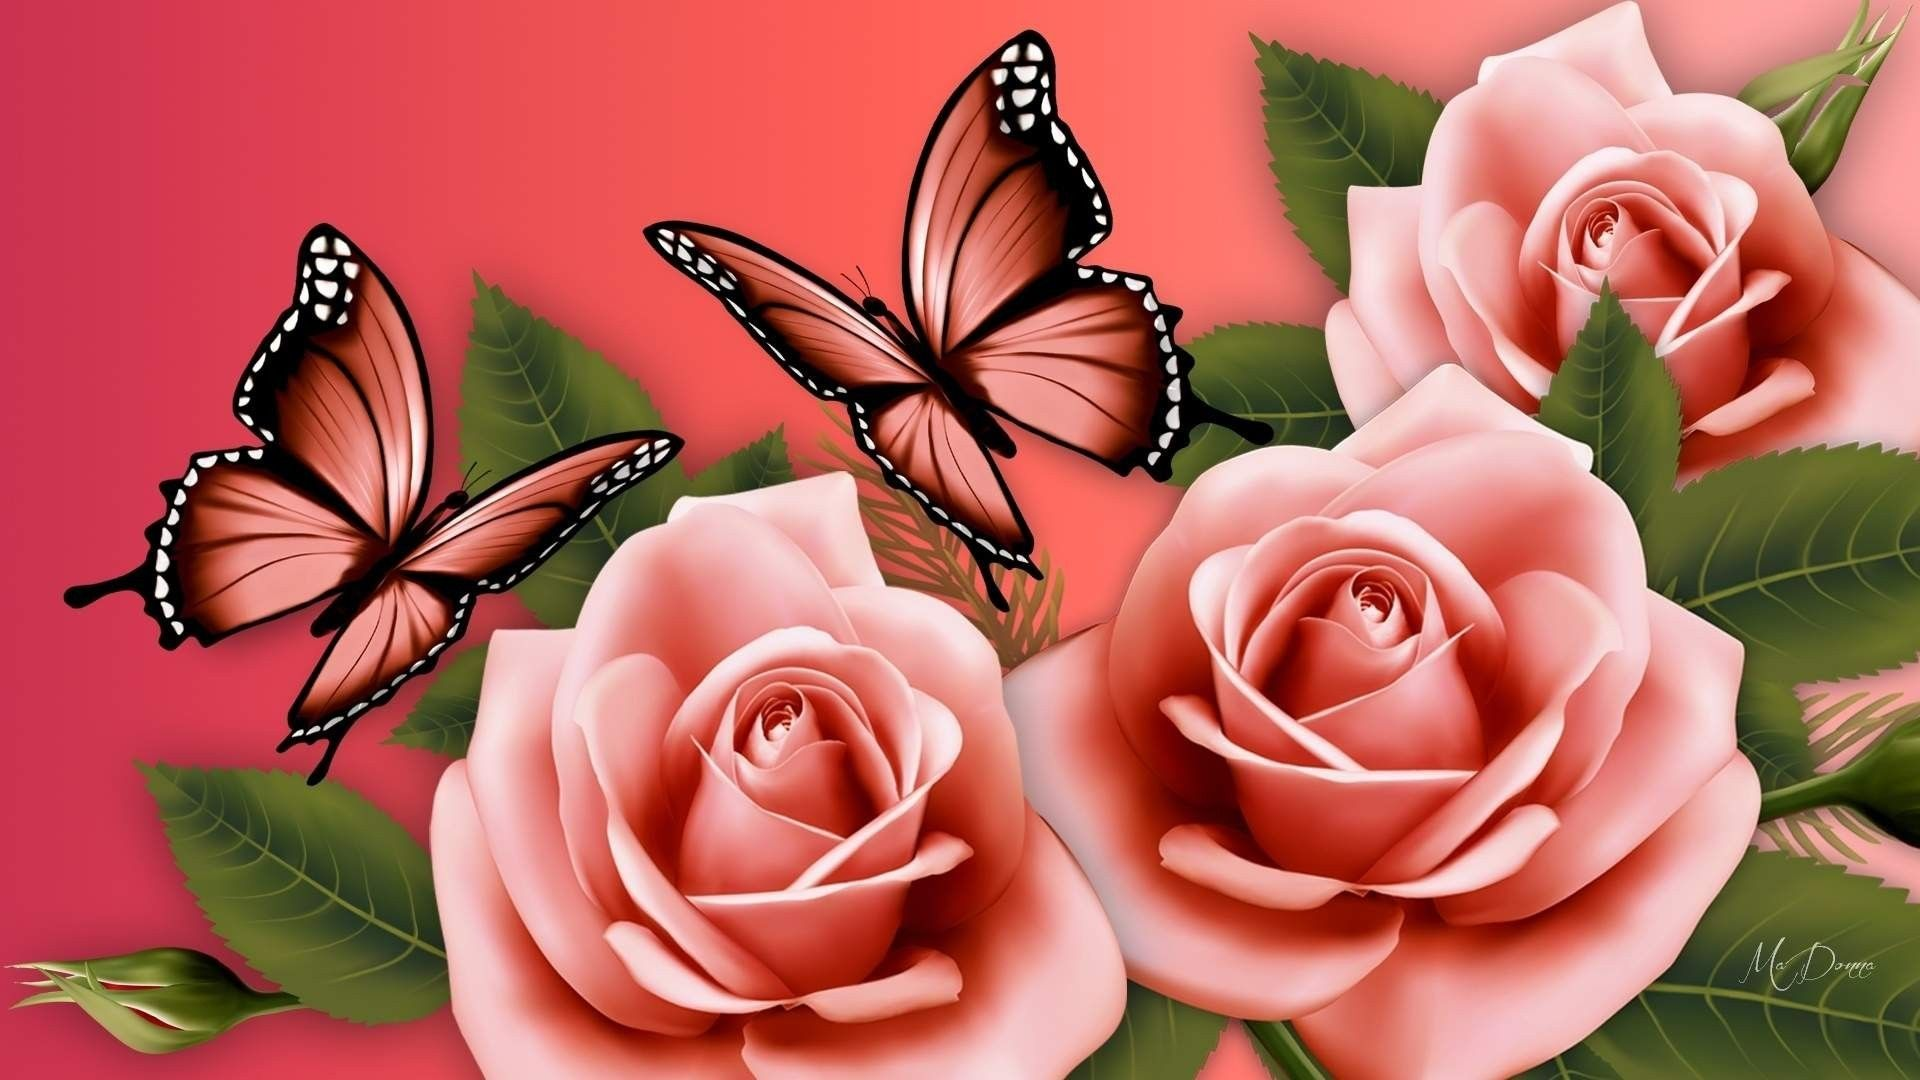 Pink Butterfly Desktop Backgrounds 2020 Live Wallpaper Hd Butterfly Wallpaper Pink Butterfly Diamond Painting